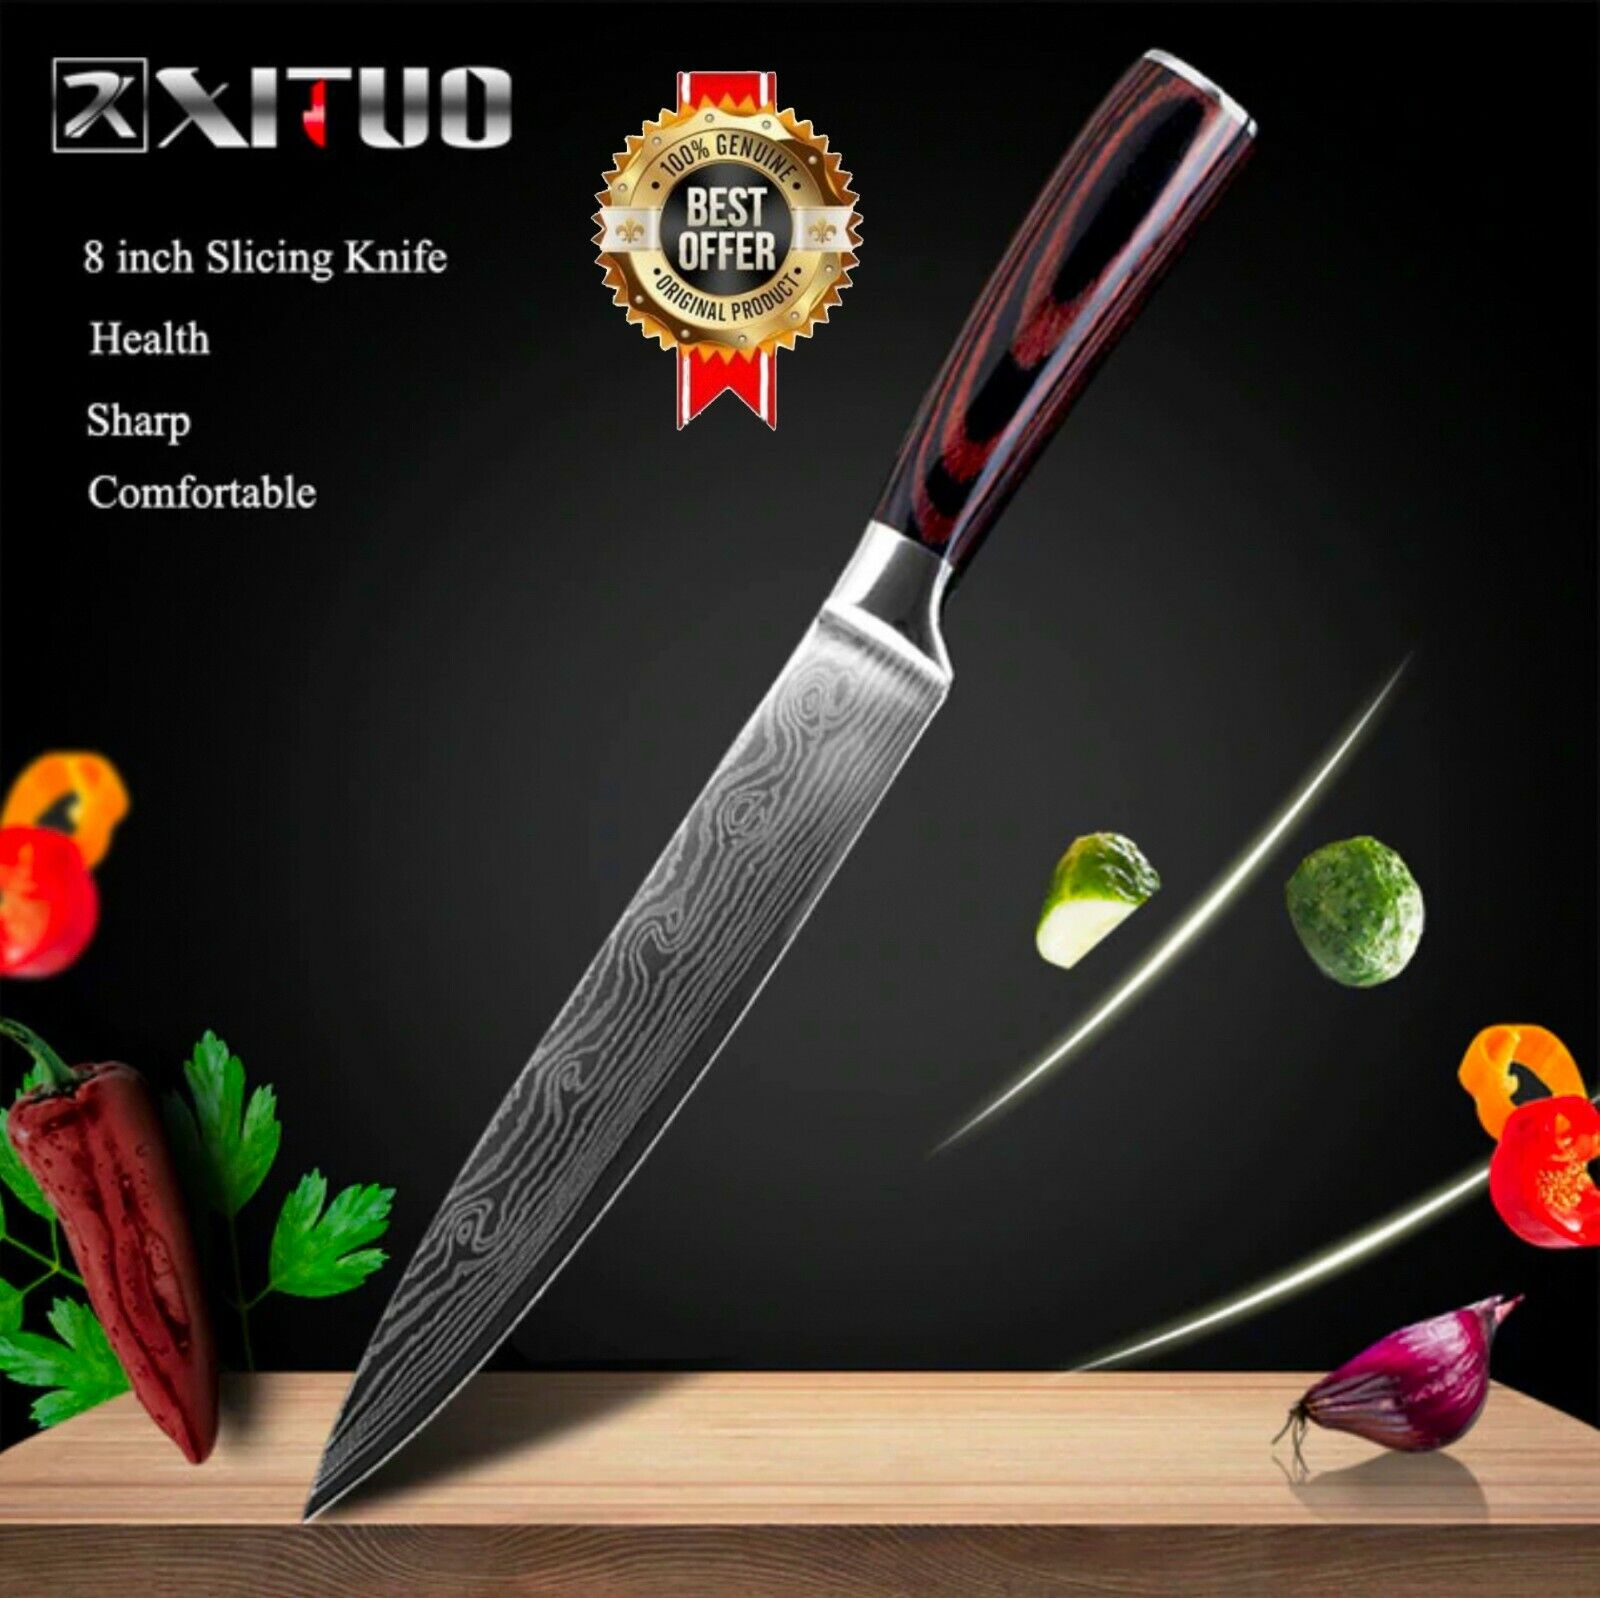 Model-5( 8in Slicing Knife )